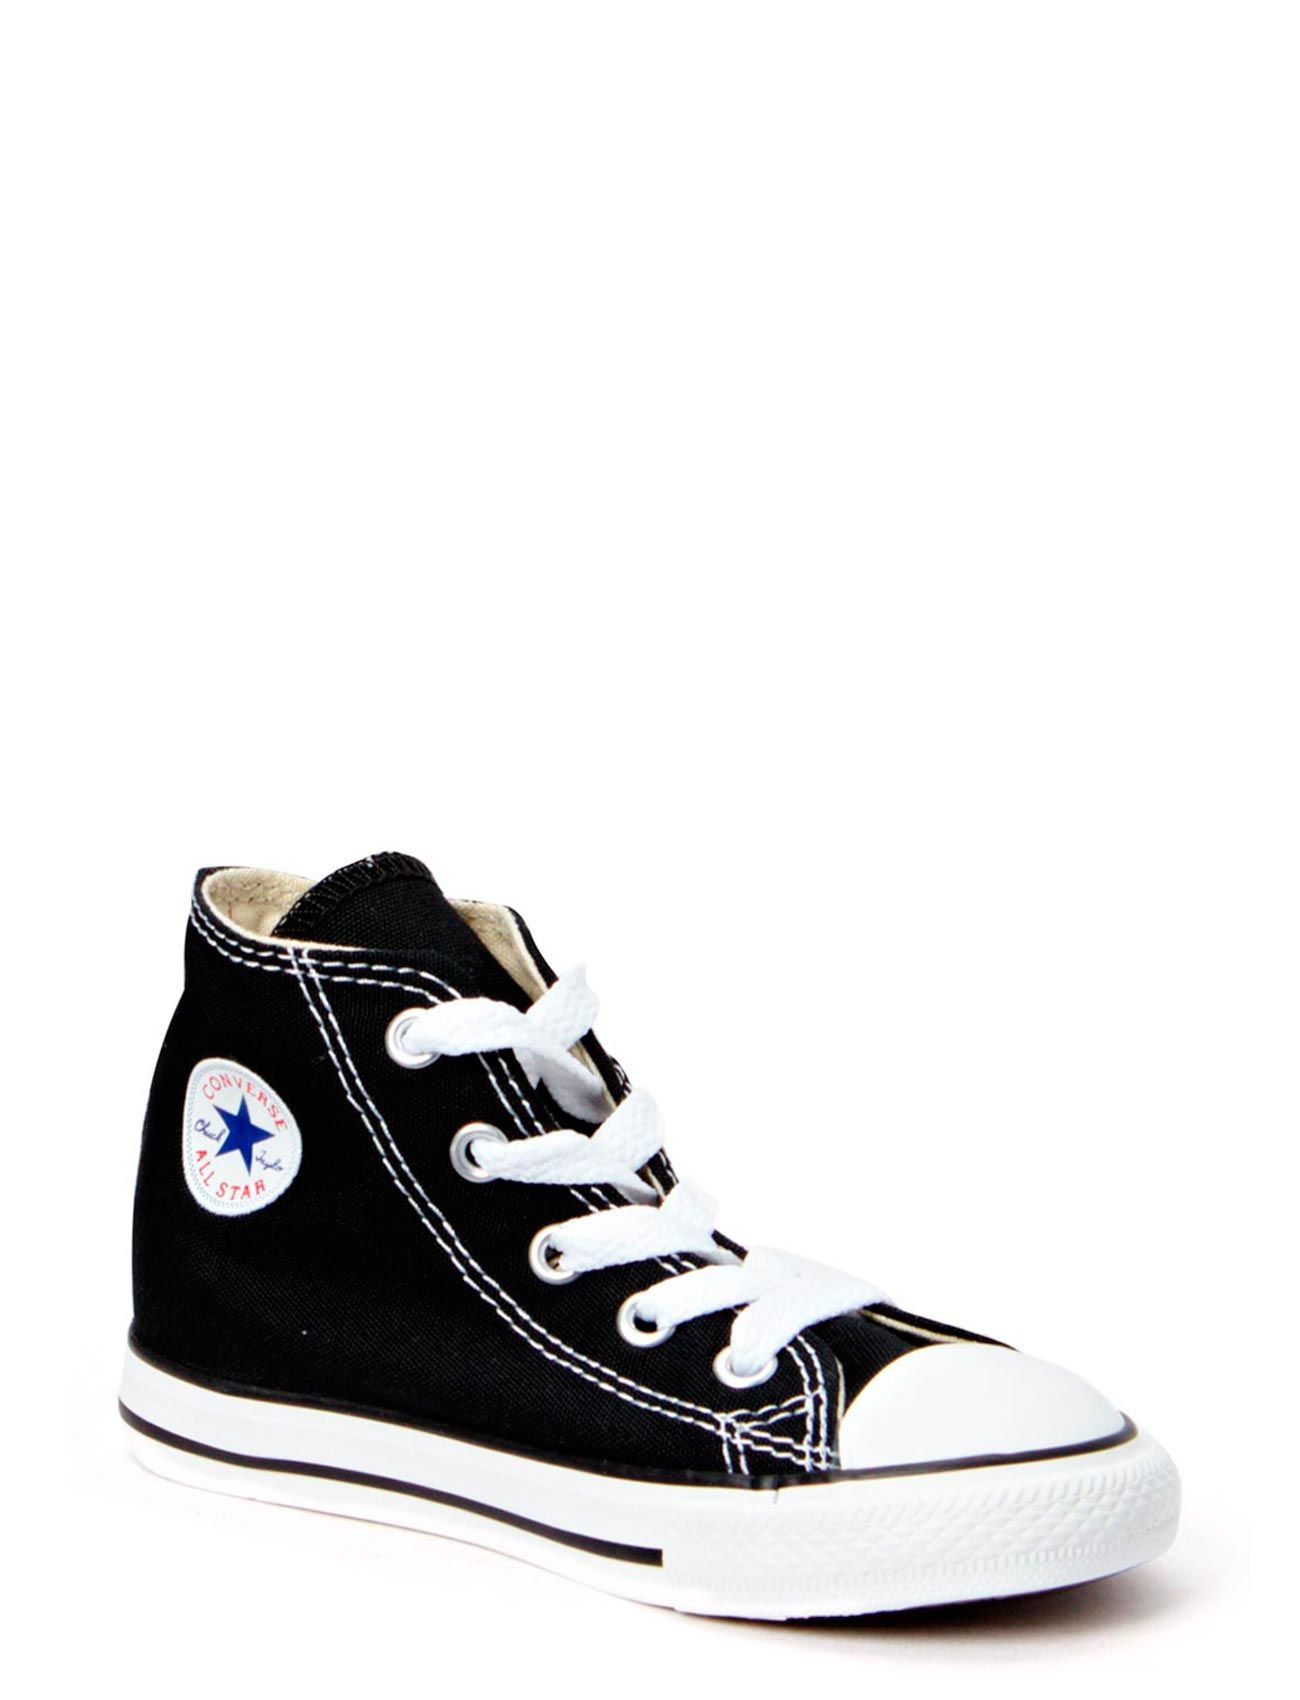 Small Star Canvas Hi Converse Sko & Sneakers til Børn i Sort